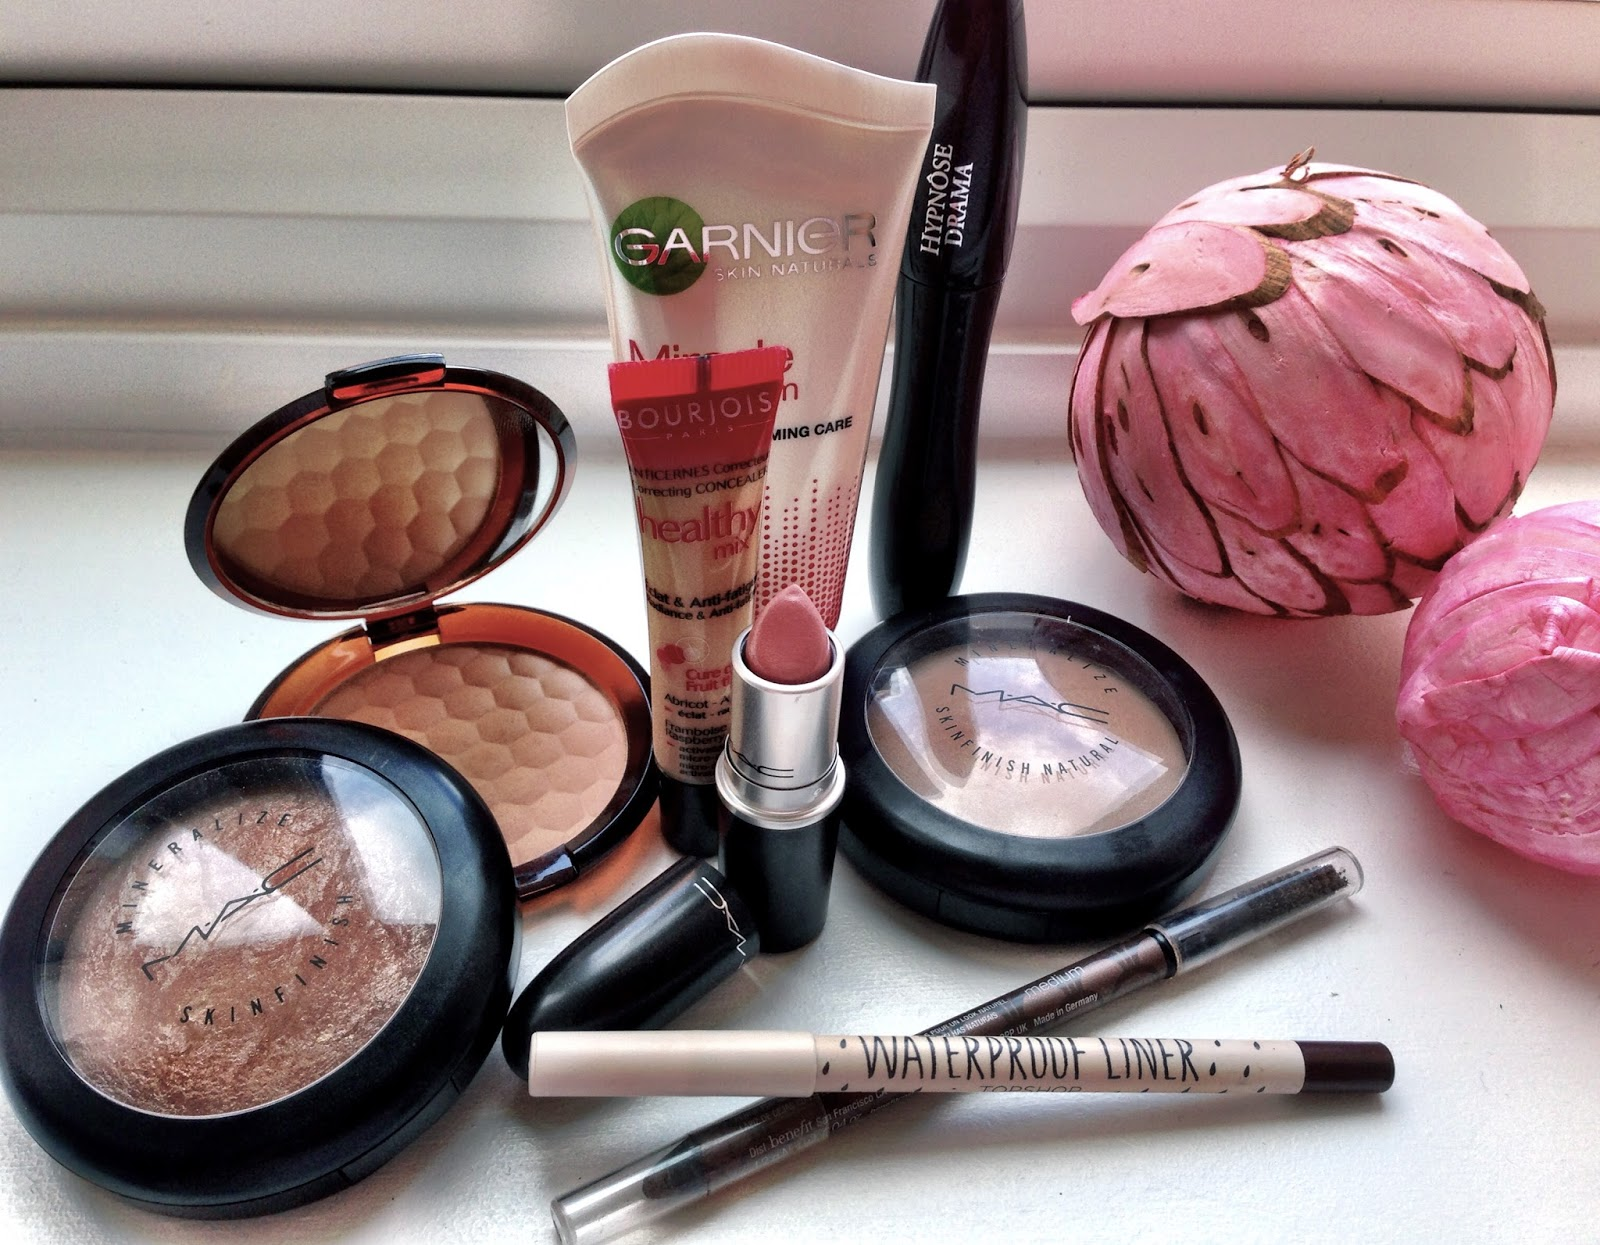 Garnier Miracle Complexion, Bourjois Healthy Mix Concealer, MAC MSF Soft & Gentle, The Body Shop Honey Bronze Bronzing Powder, MAC Cremesheen Lipstick Creme Cup, Mac Mineralise Natural Powder, Topshop Waterproof Eyeliner, Benefit Instant Brow Pencil, Lancome Hypnose Drama Mascara